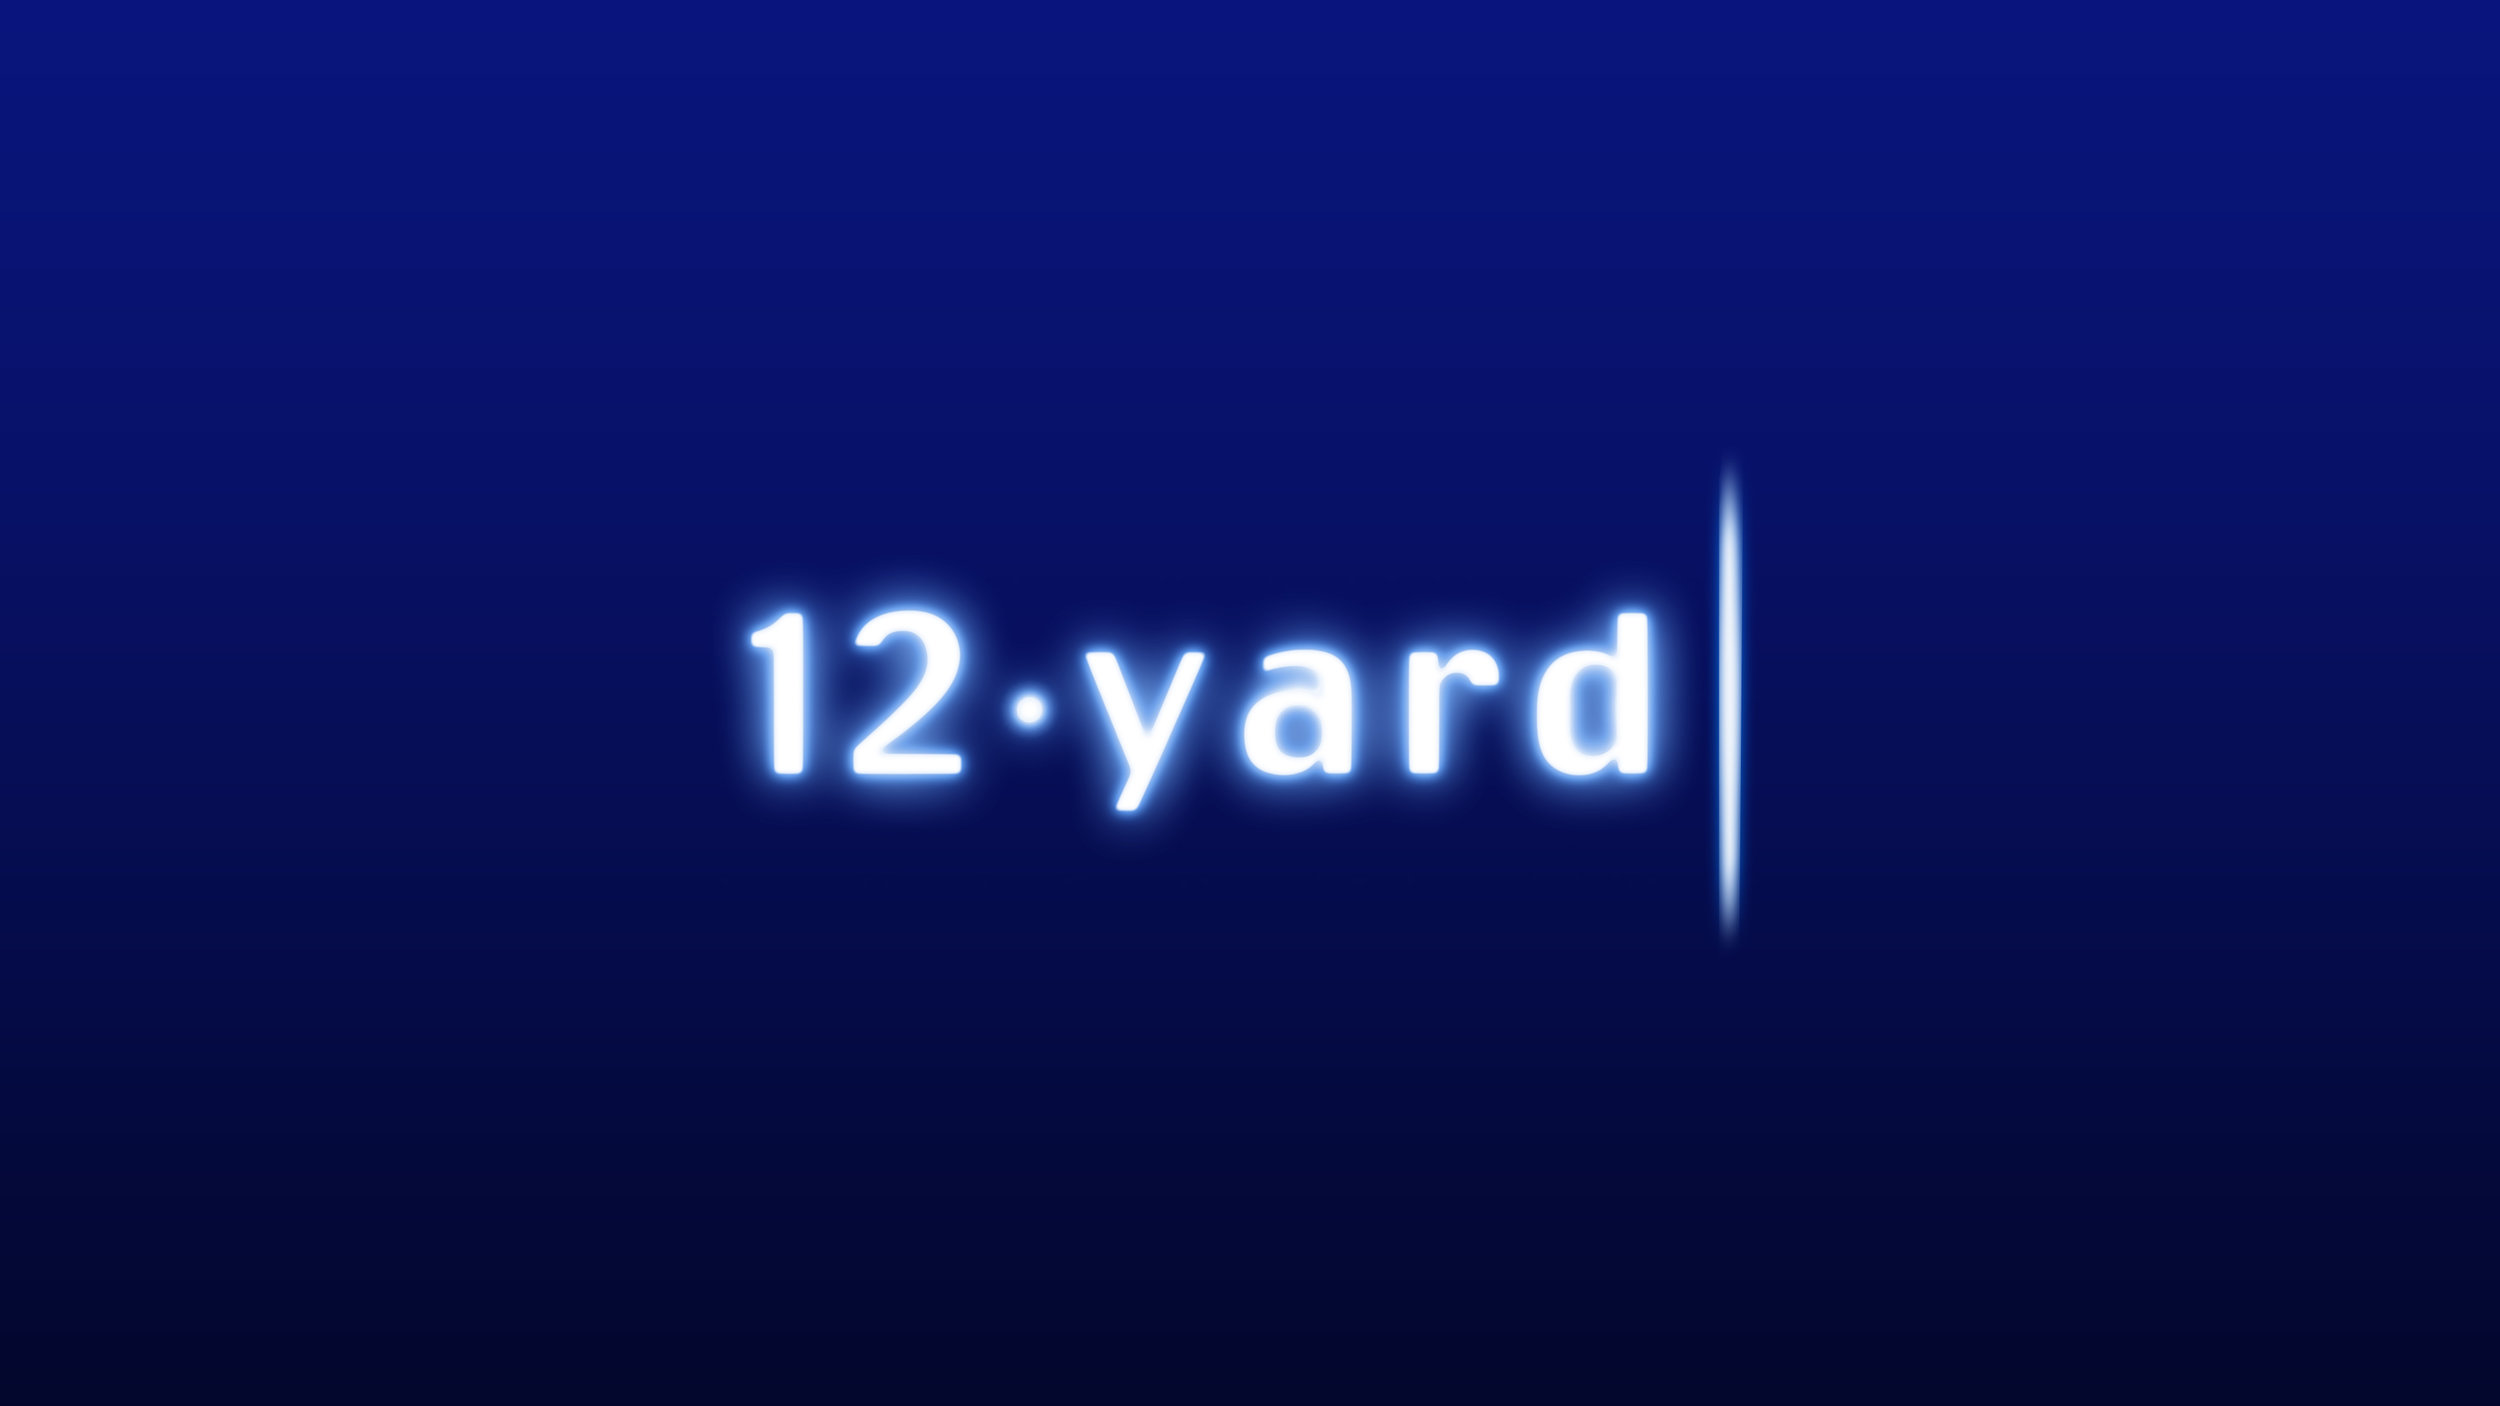 12 yard productions